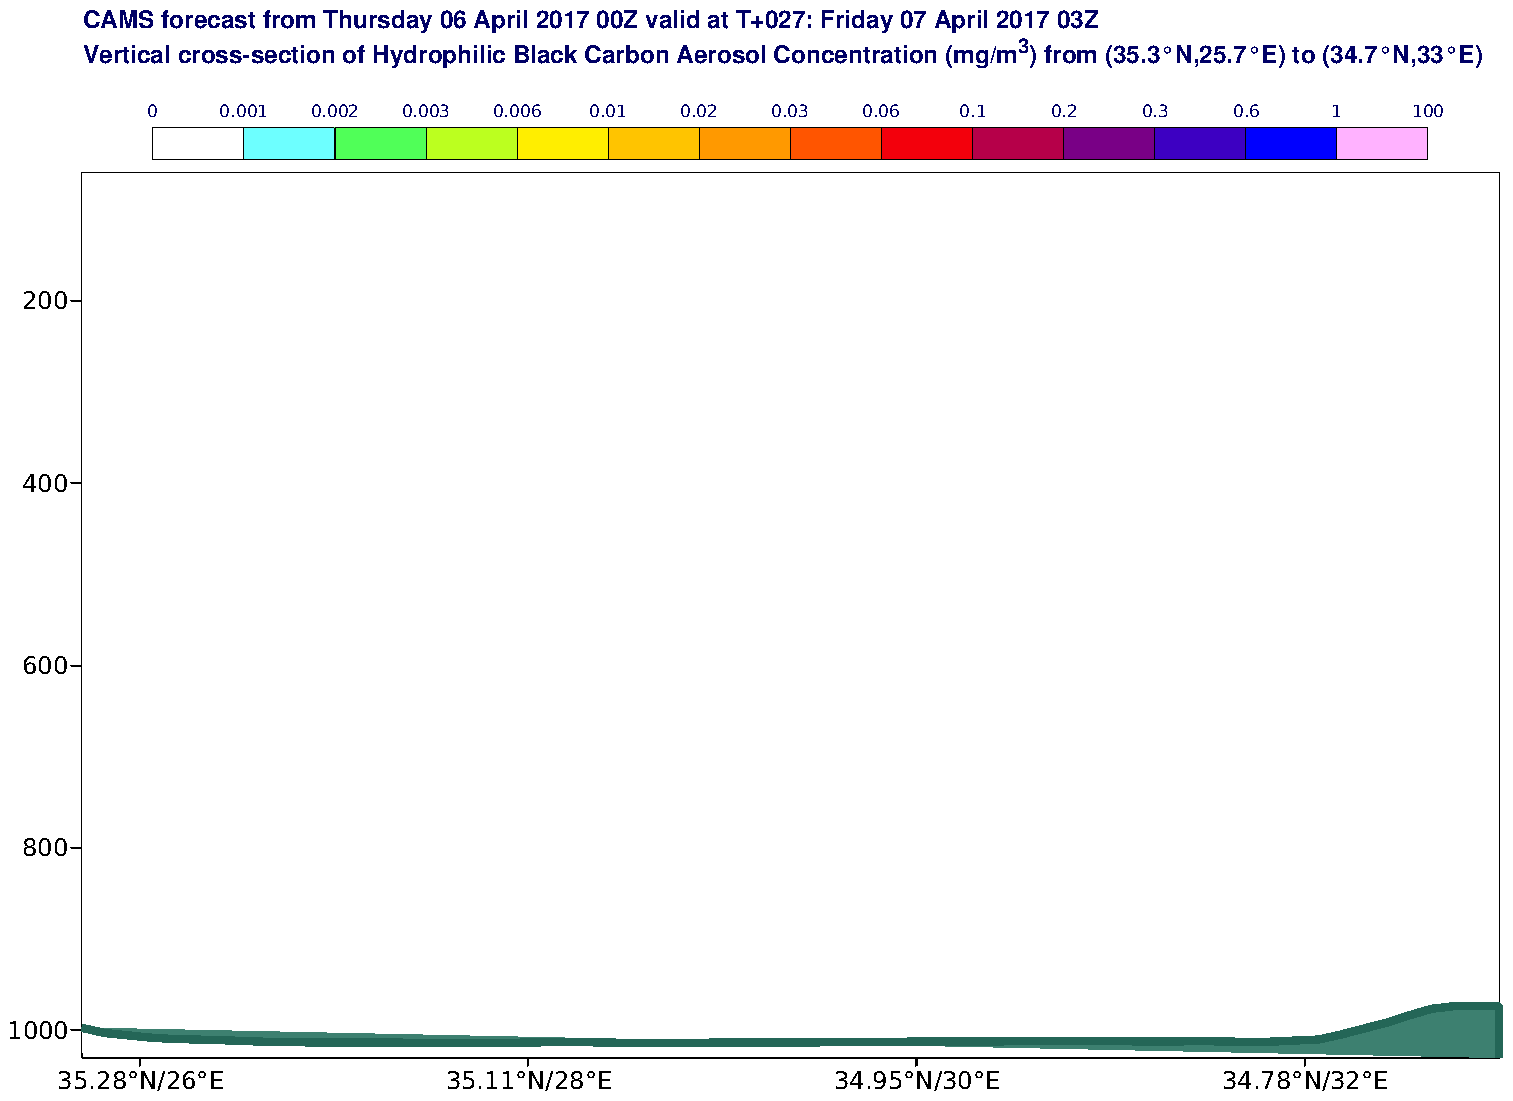 Vertical cross-section of Hydrophilic Black Carbon Aerosol Concentration (mg/m3) valid at T27 - 2017-04-07 03:00